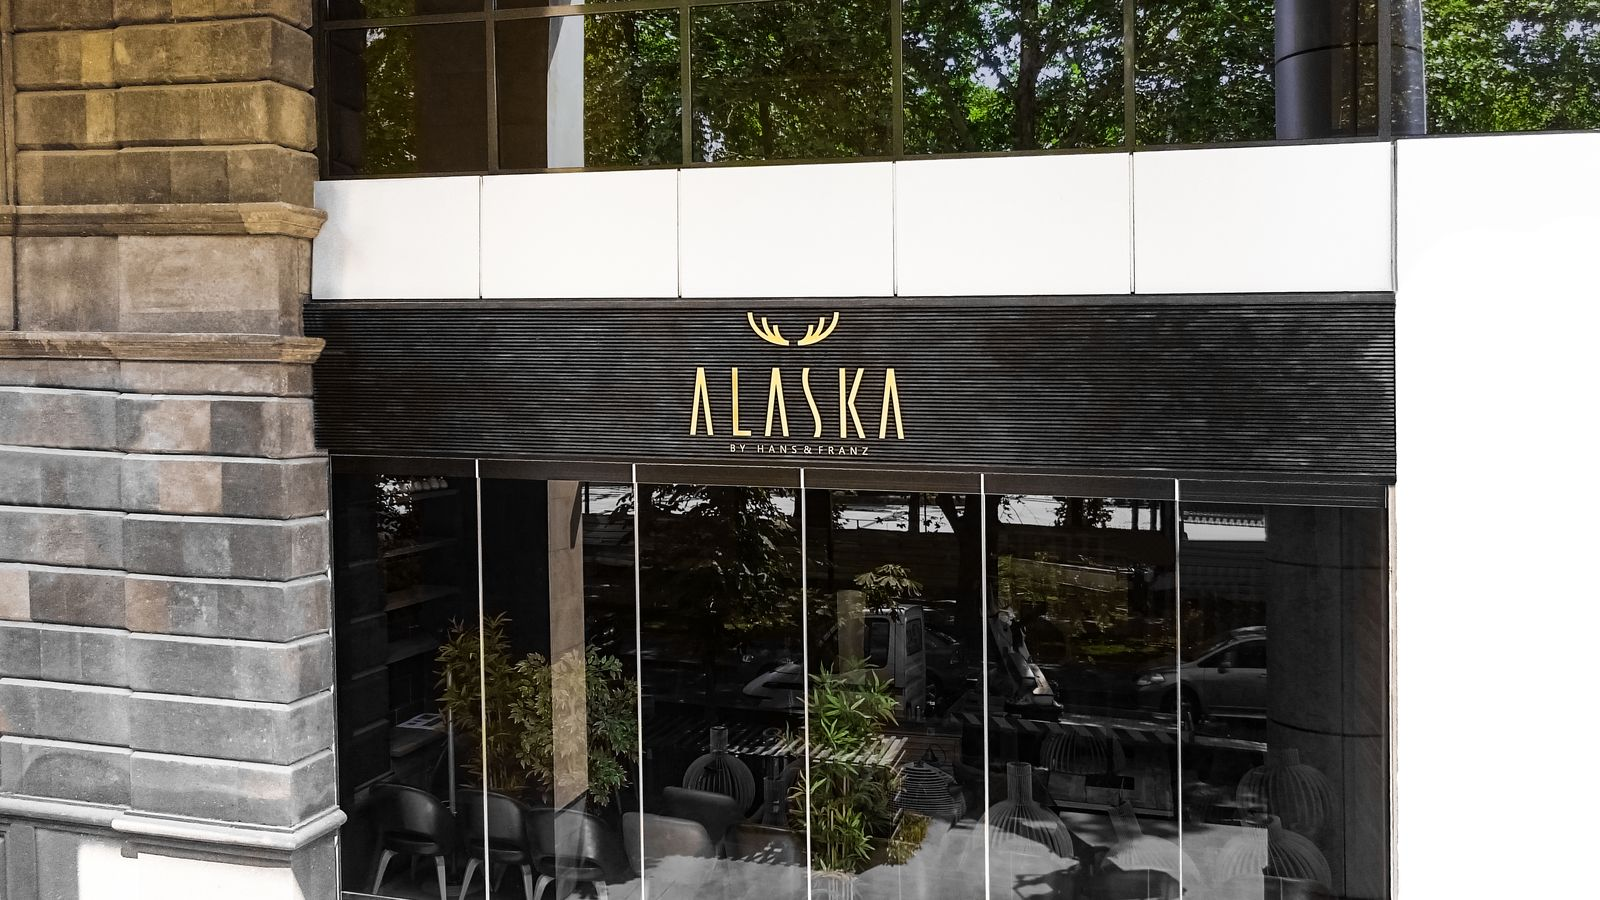 Alaska by Hanz & Franz 3d plastic letters with the company name and logo made of PVC for restaurant storefront branding